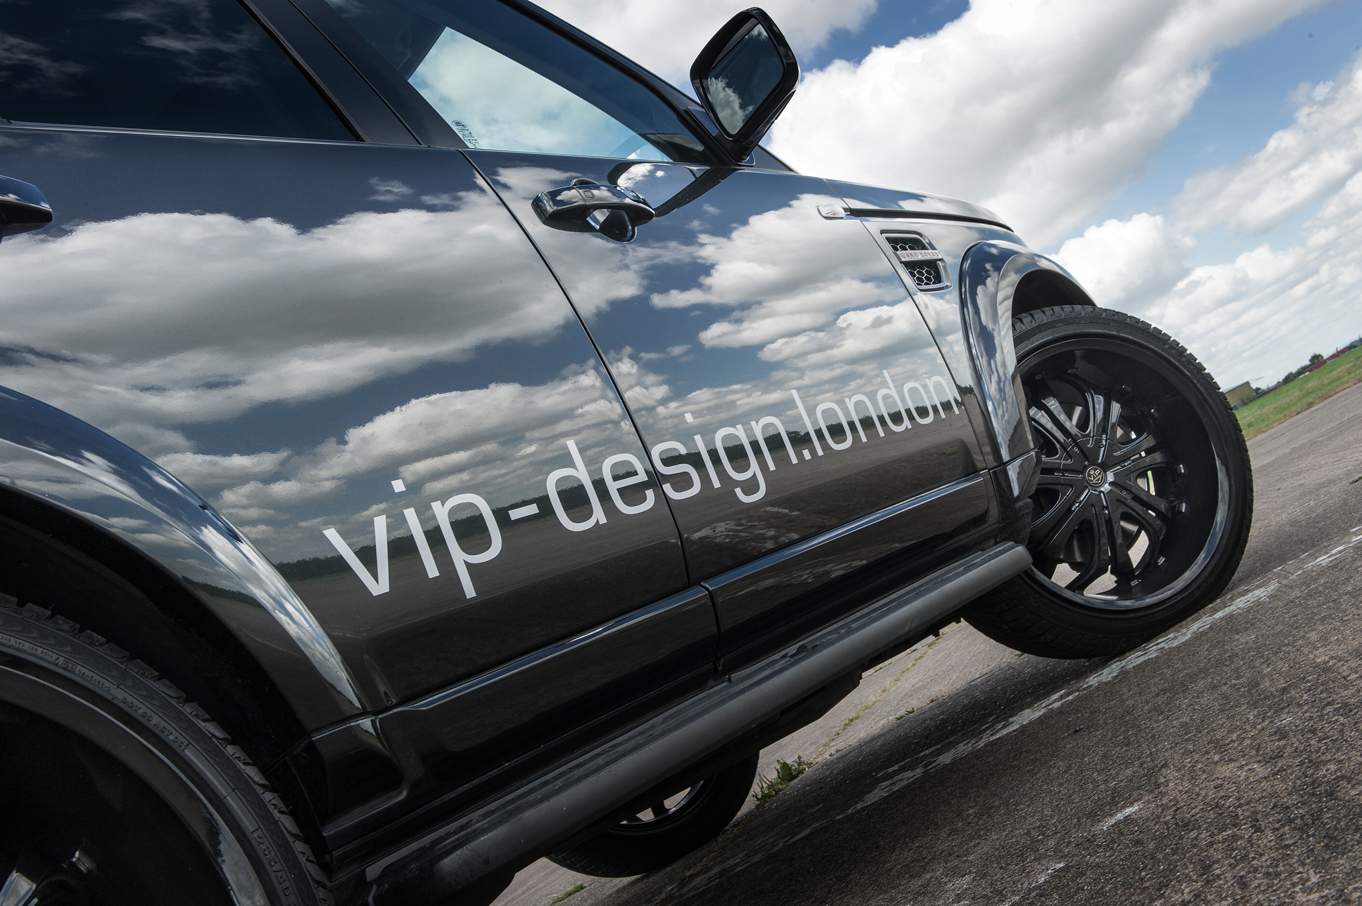 VIP Design Supercar Club Land Rover Discover Tuning